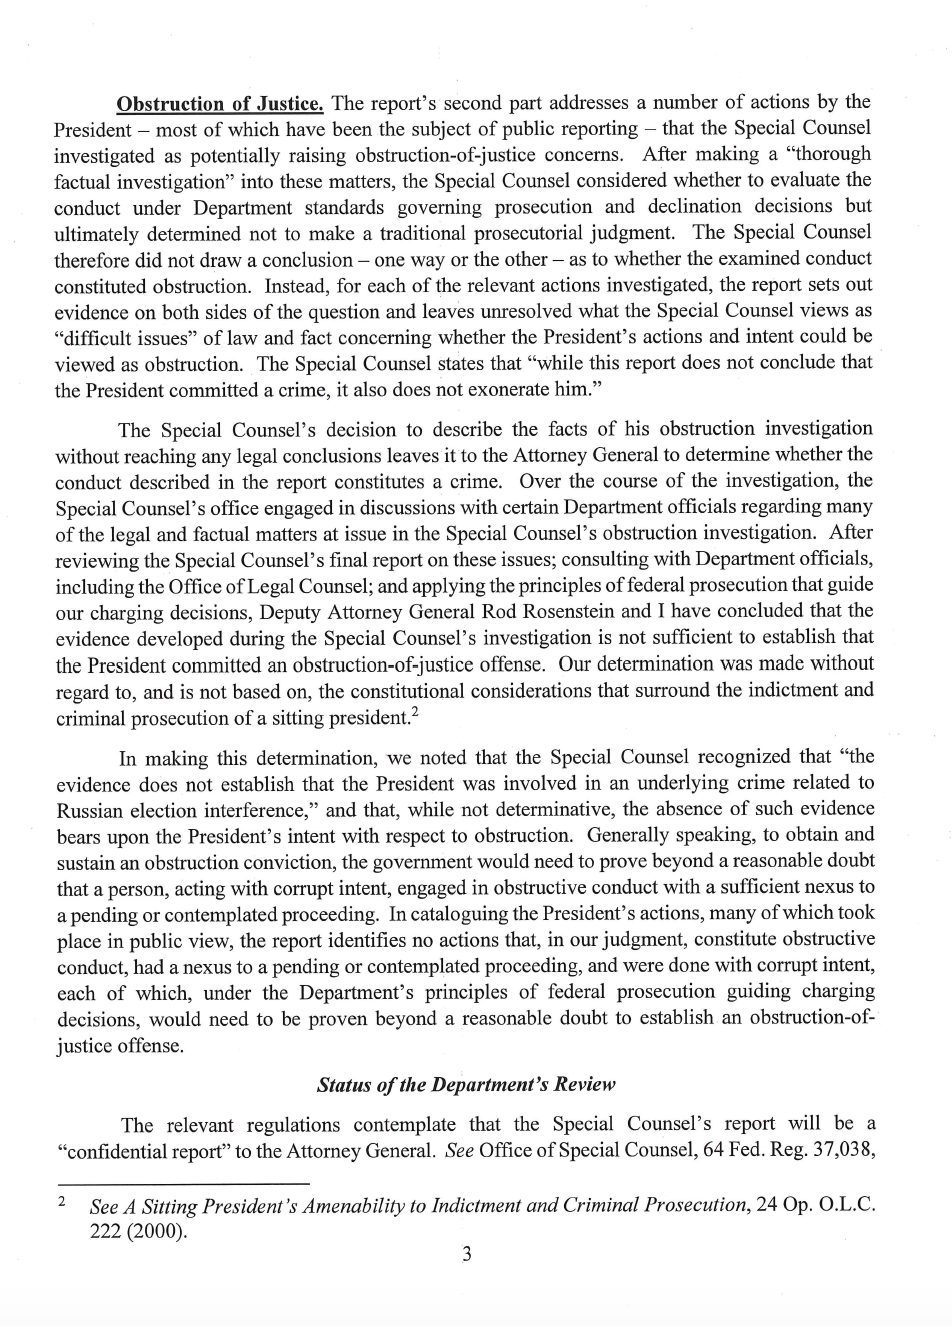 Page 3 of Attorney General William Barr's letter to Congress on Special Counsel Robert Mueller's report.